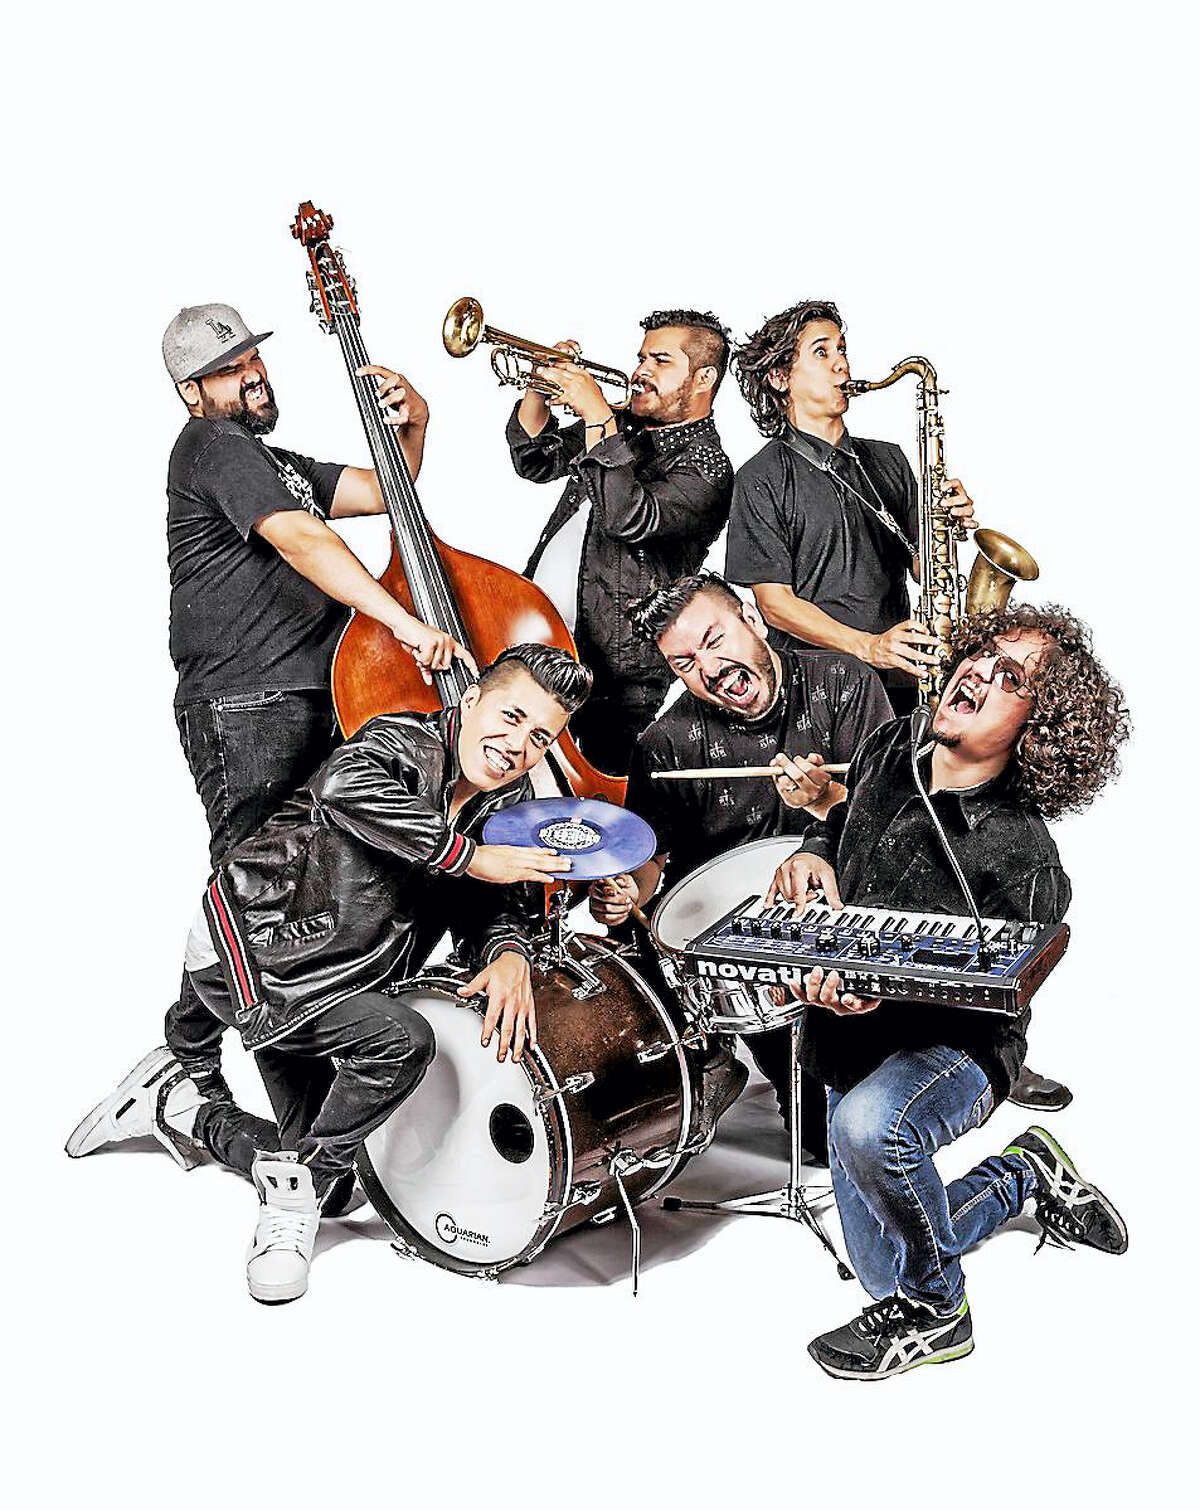 Troker, the Mexican jazz and psychedelic music band.